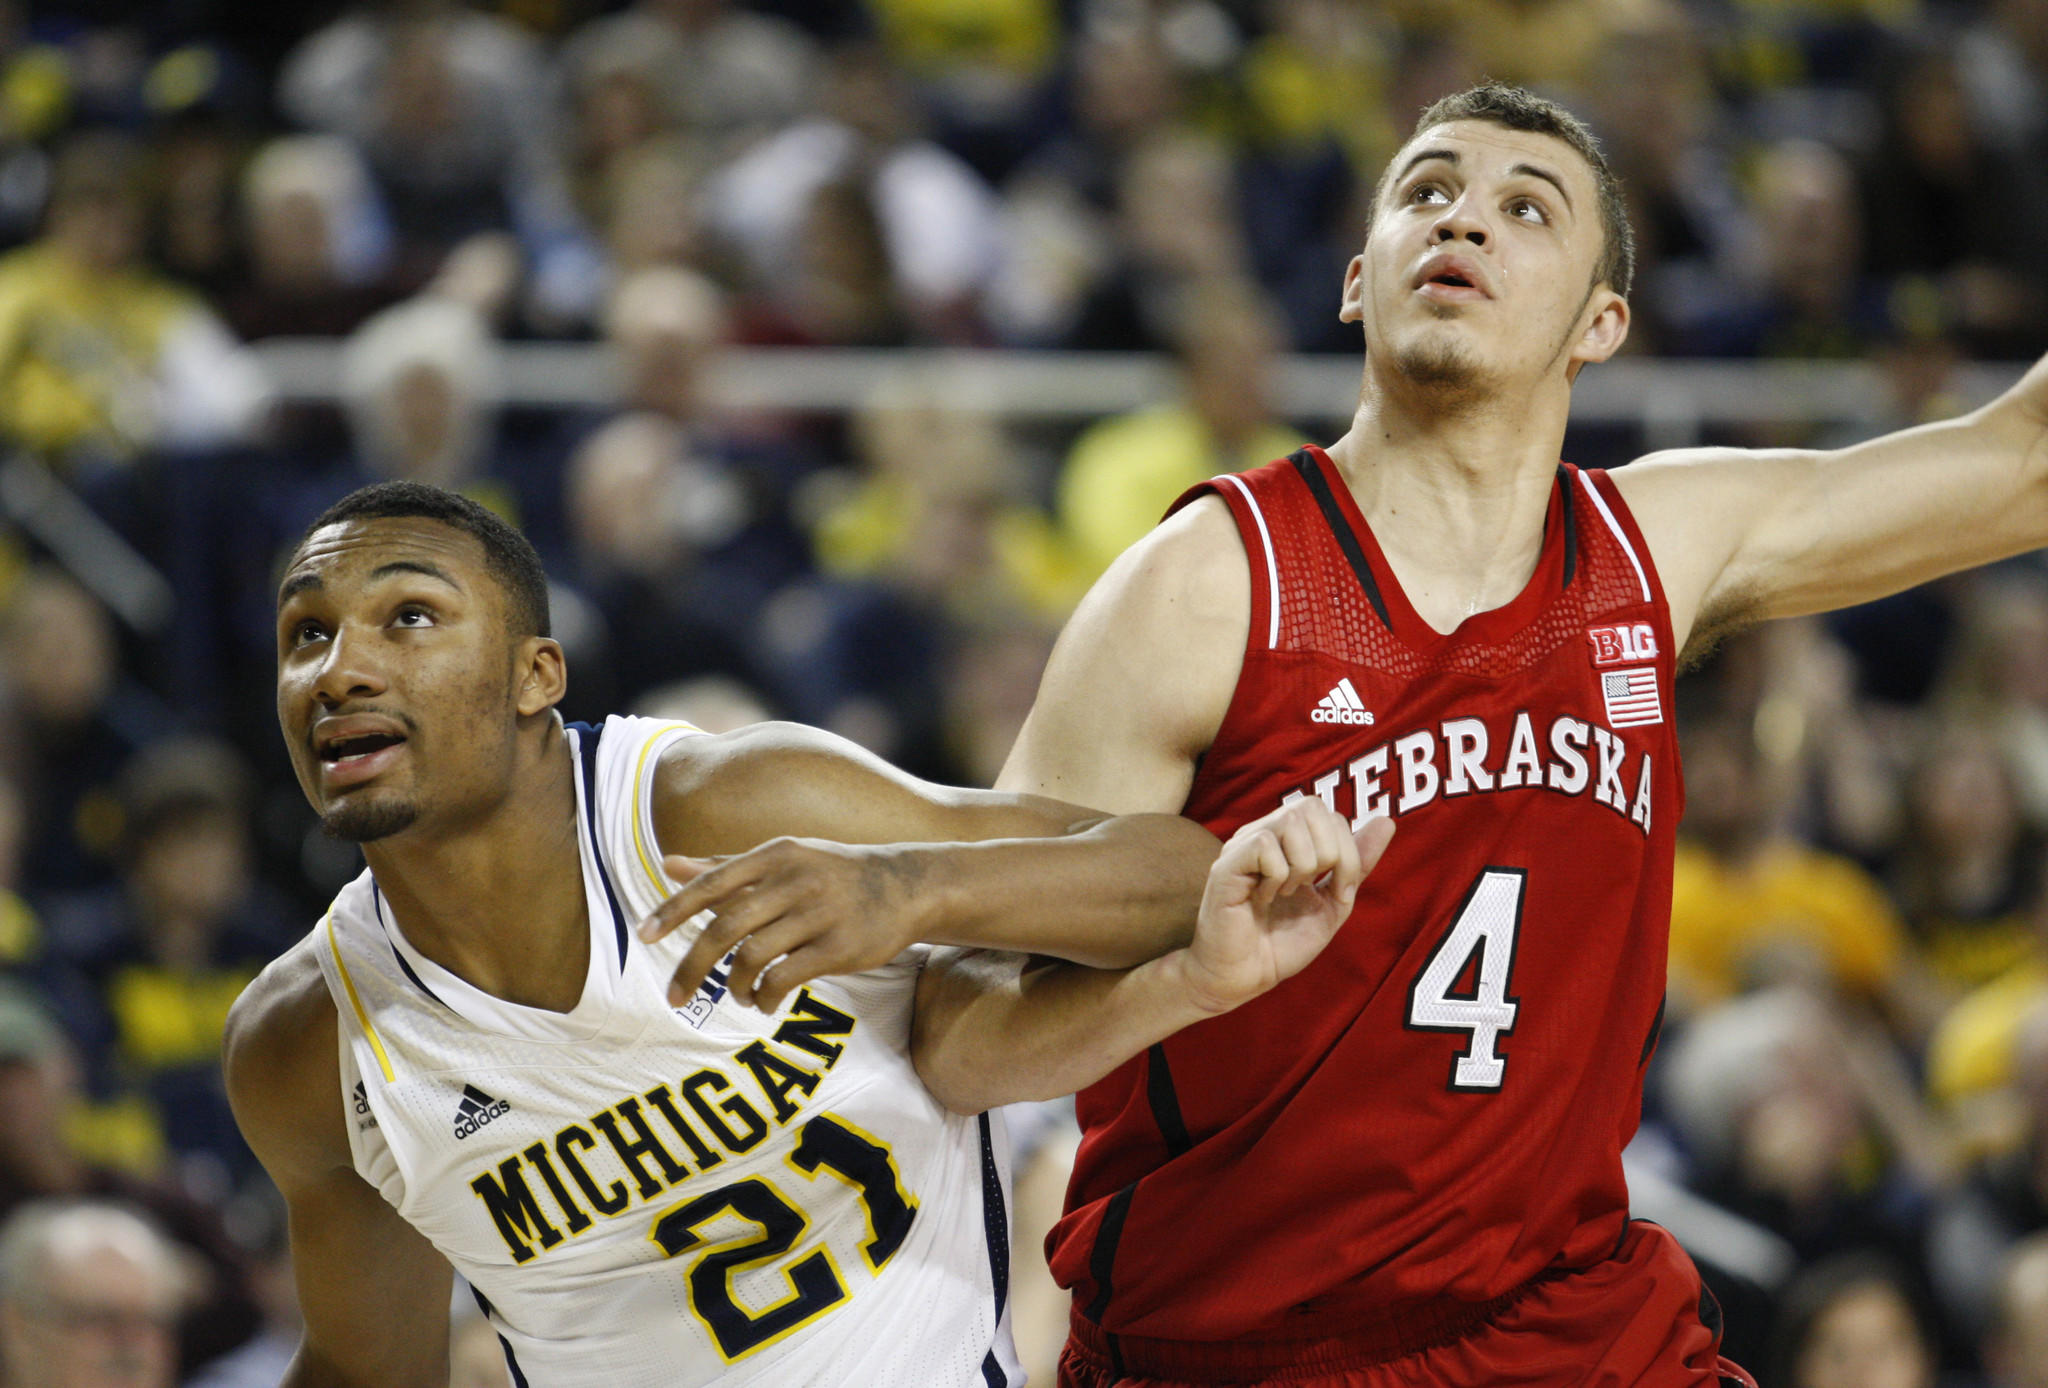 Michigan's Zak Irvin and Nebraska's Nathan Hawkins fight for position during the second half at Crisler Arena.